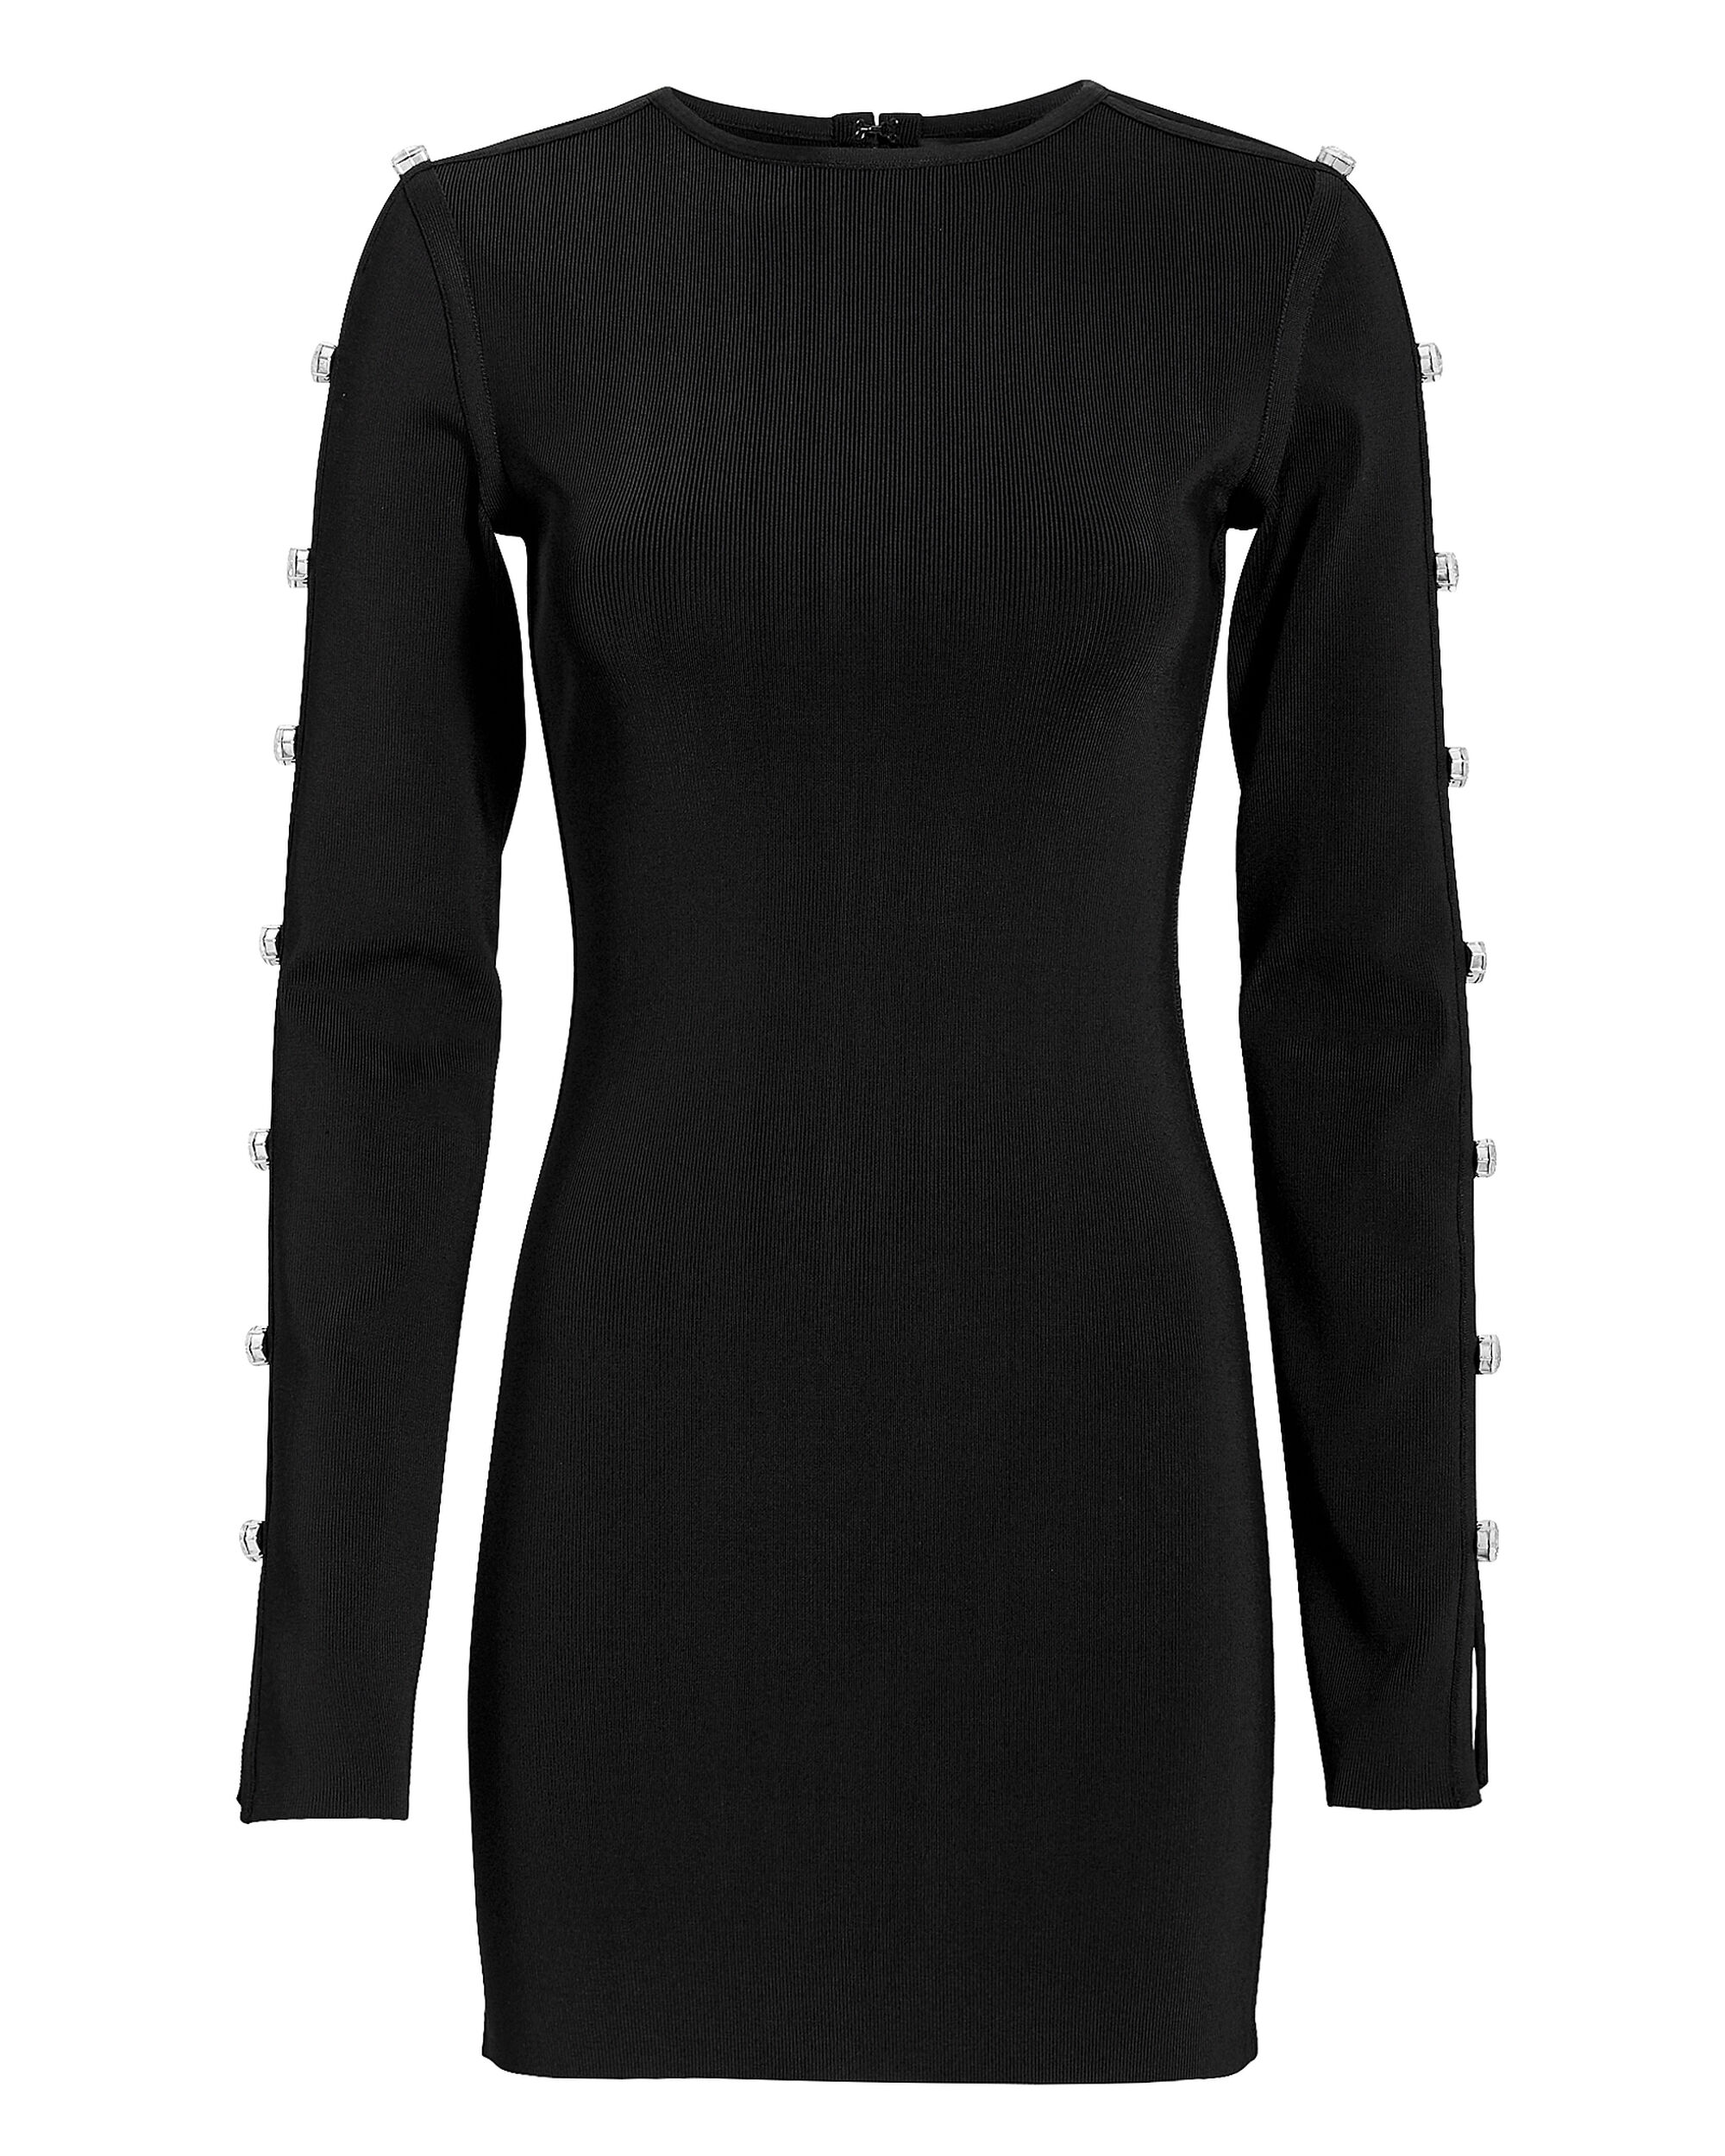 Crystal-Embellished Slit Sleeve Mini Dress, BLACK, hi-res